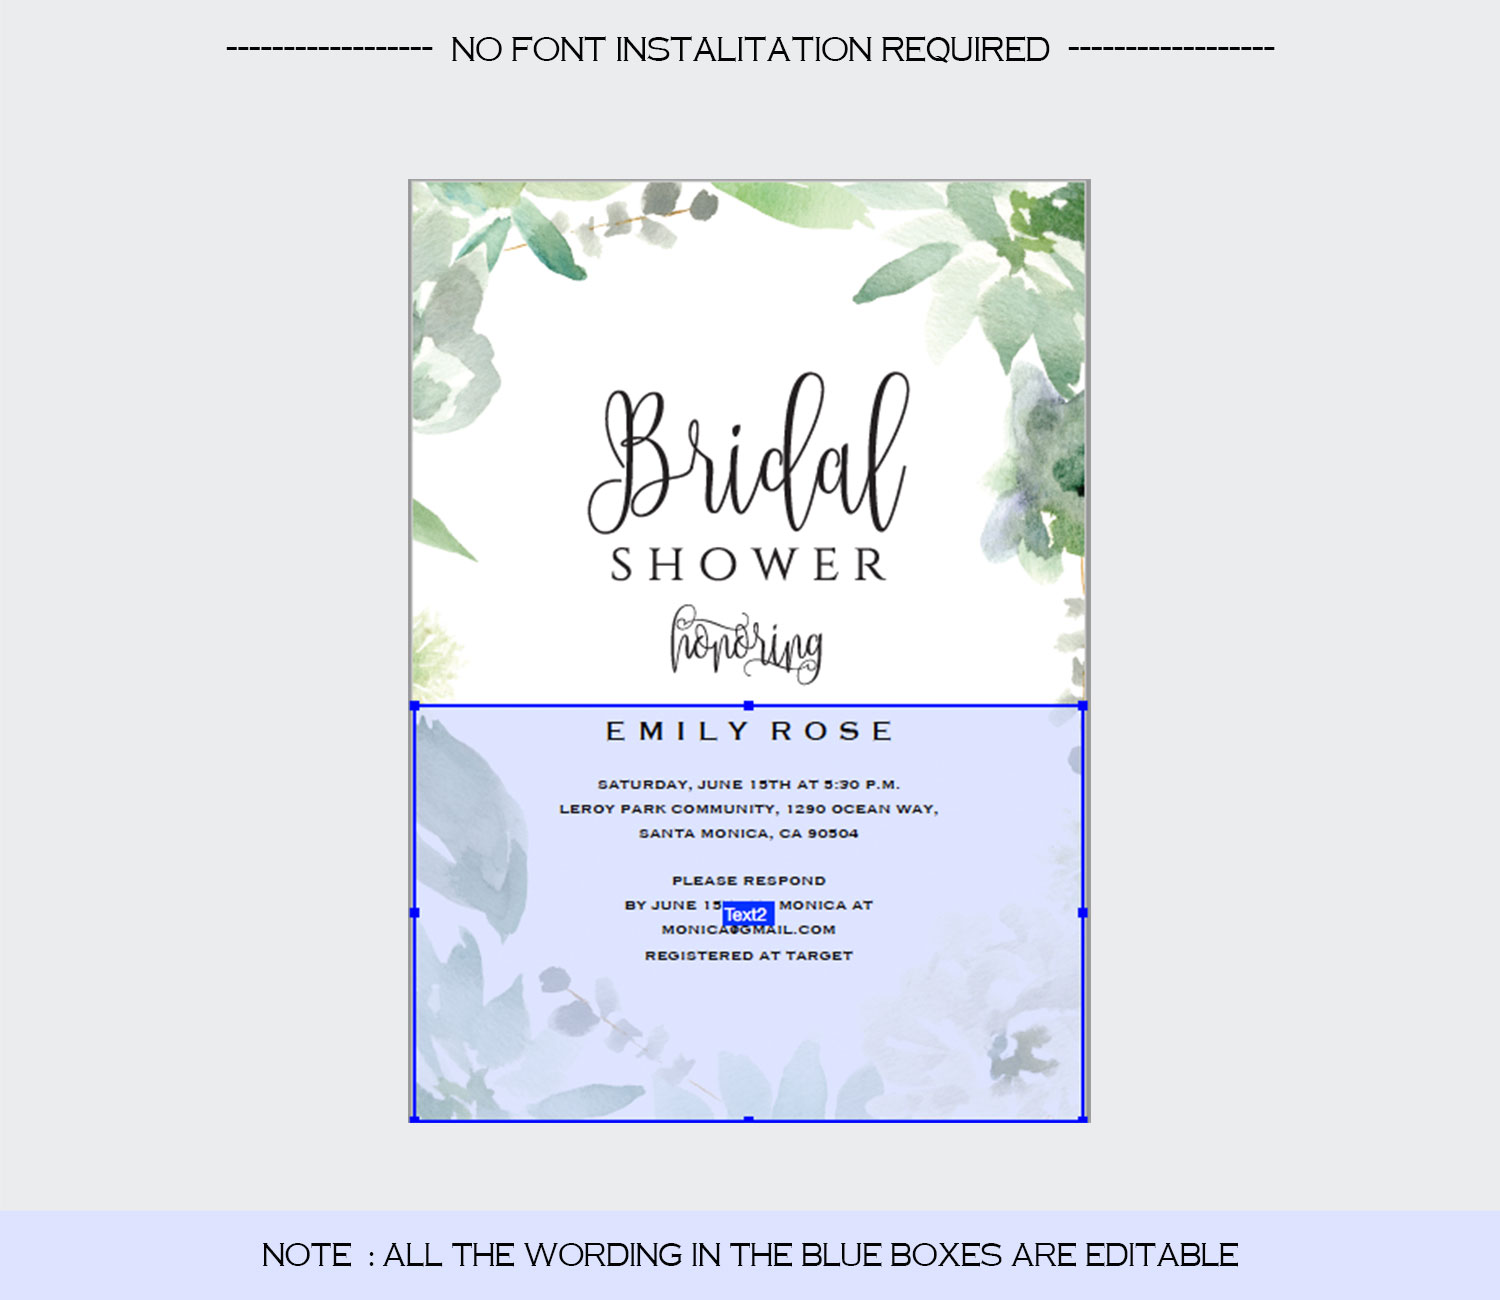 Bridal Shower Invitation Template example image 4